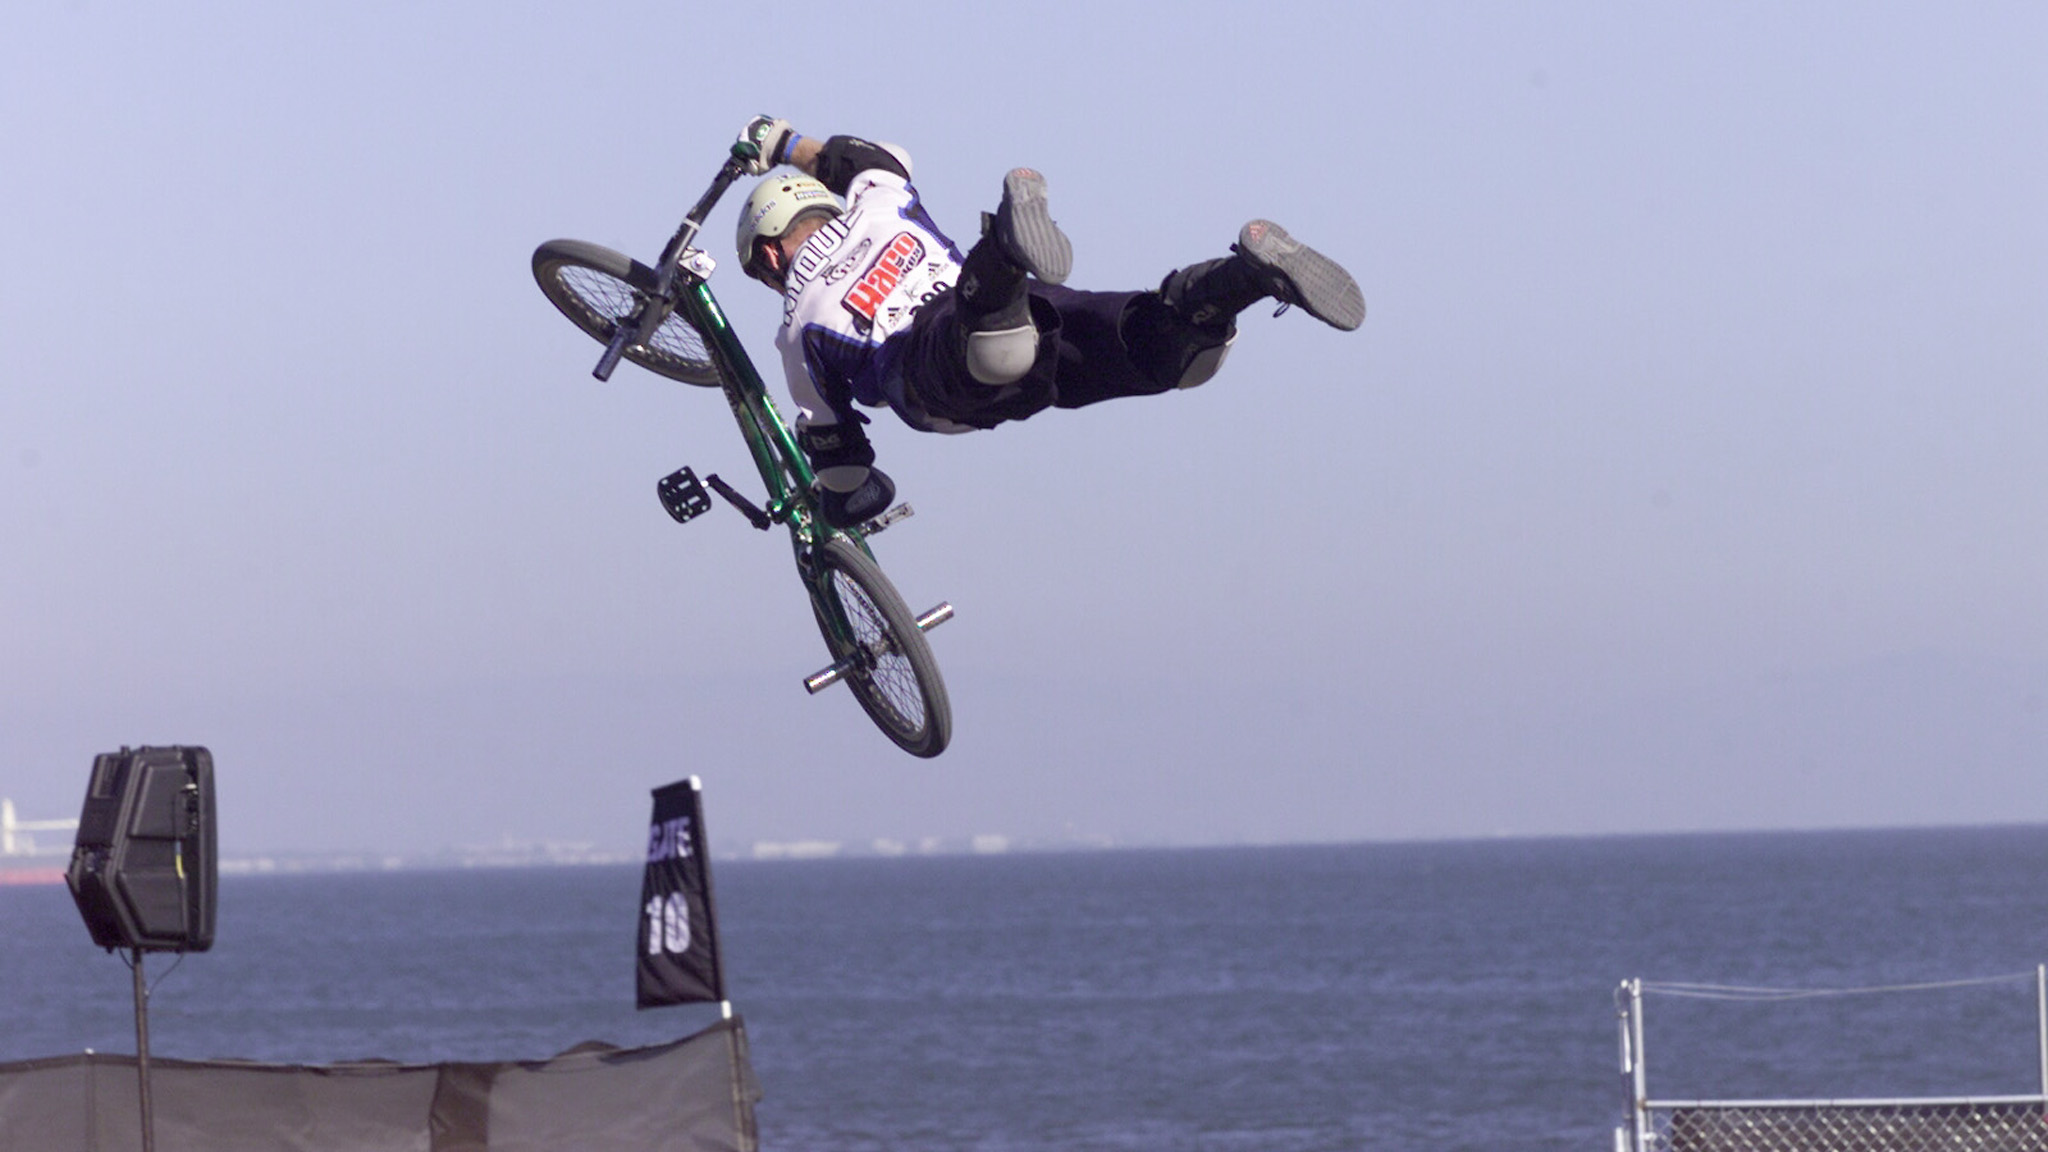 Superman seatgrab from Nyquist at the 2000 X Games in San Francisco. Nyquist is the sole BMX Park and Dirt competitor at X Games Foz with such an extensive background at X Games events.